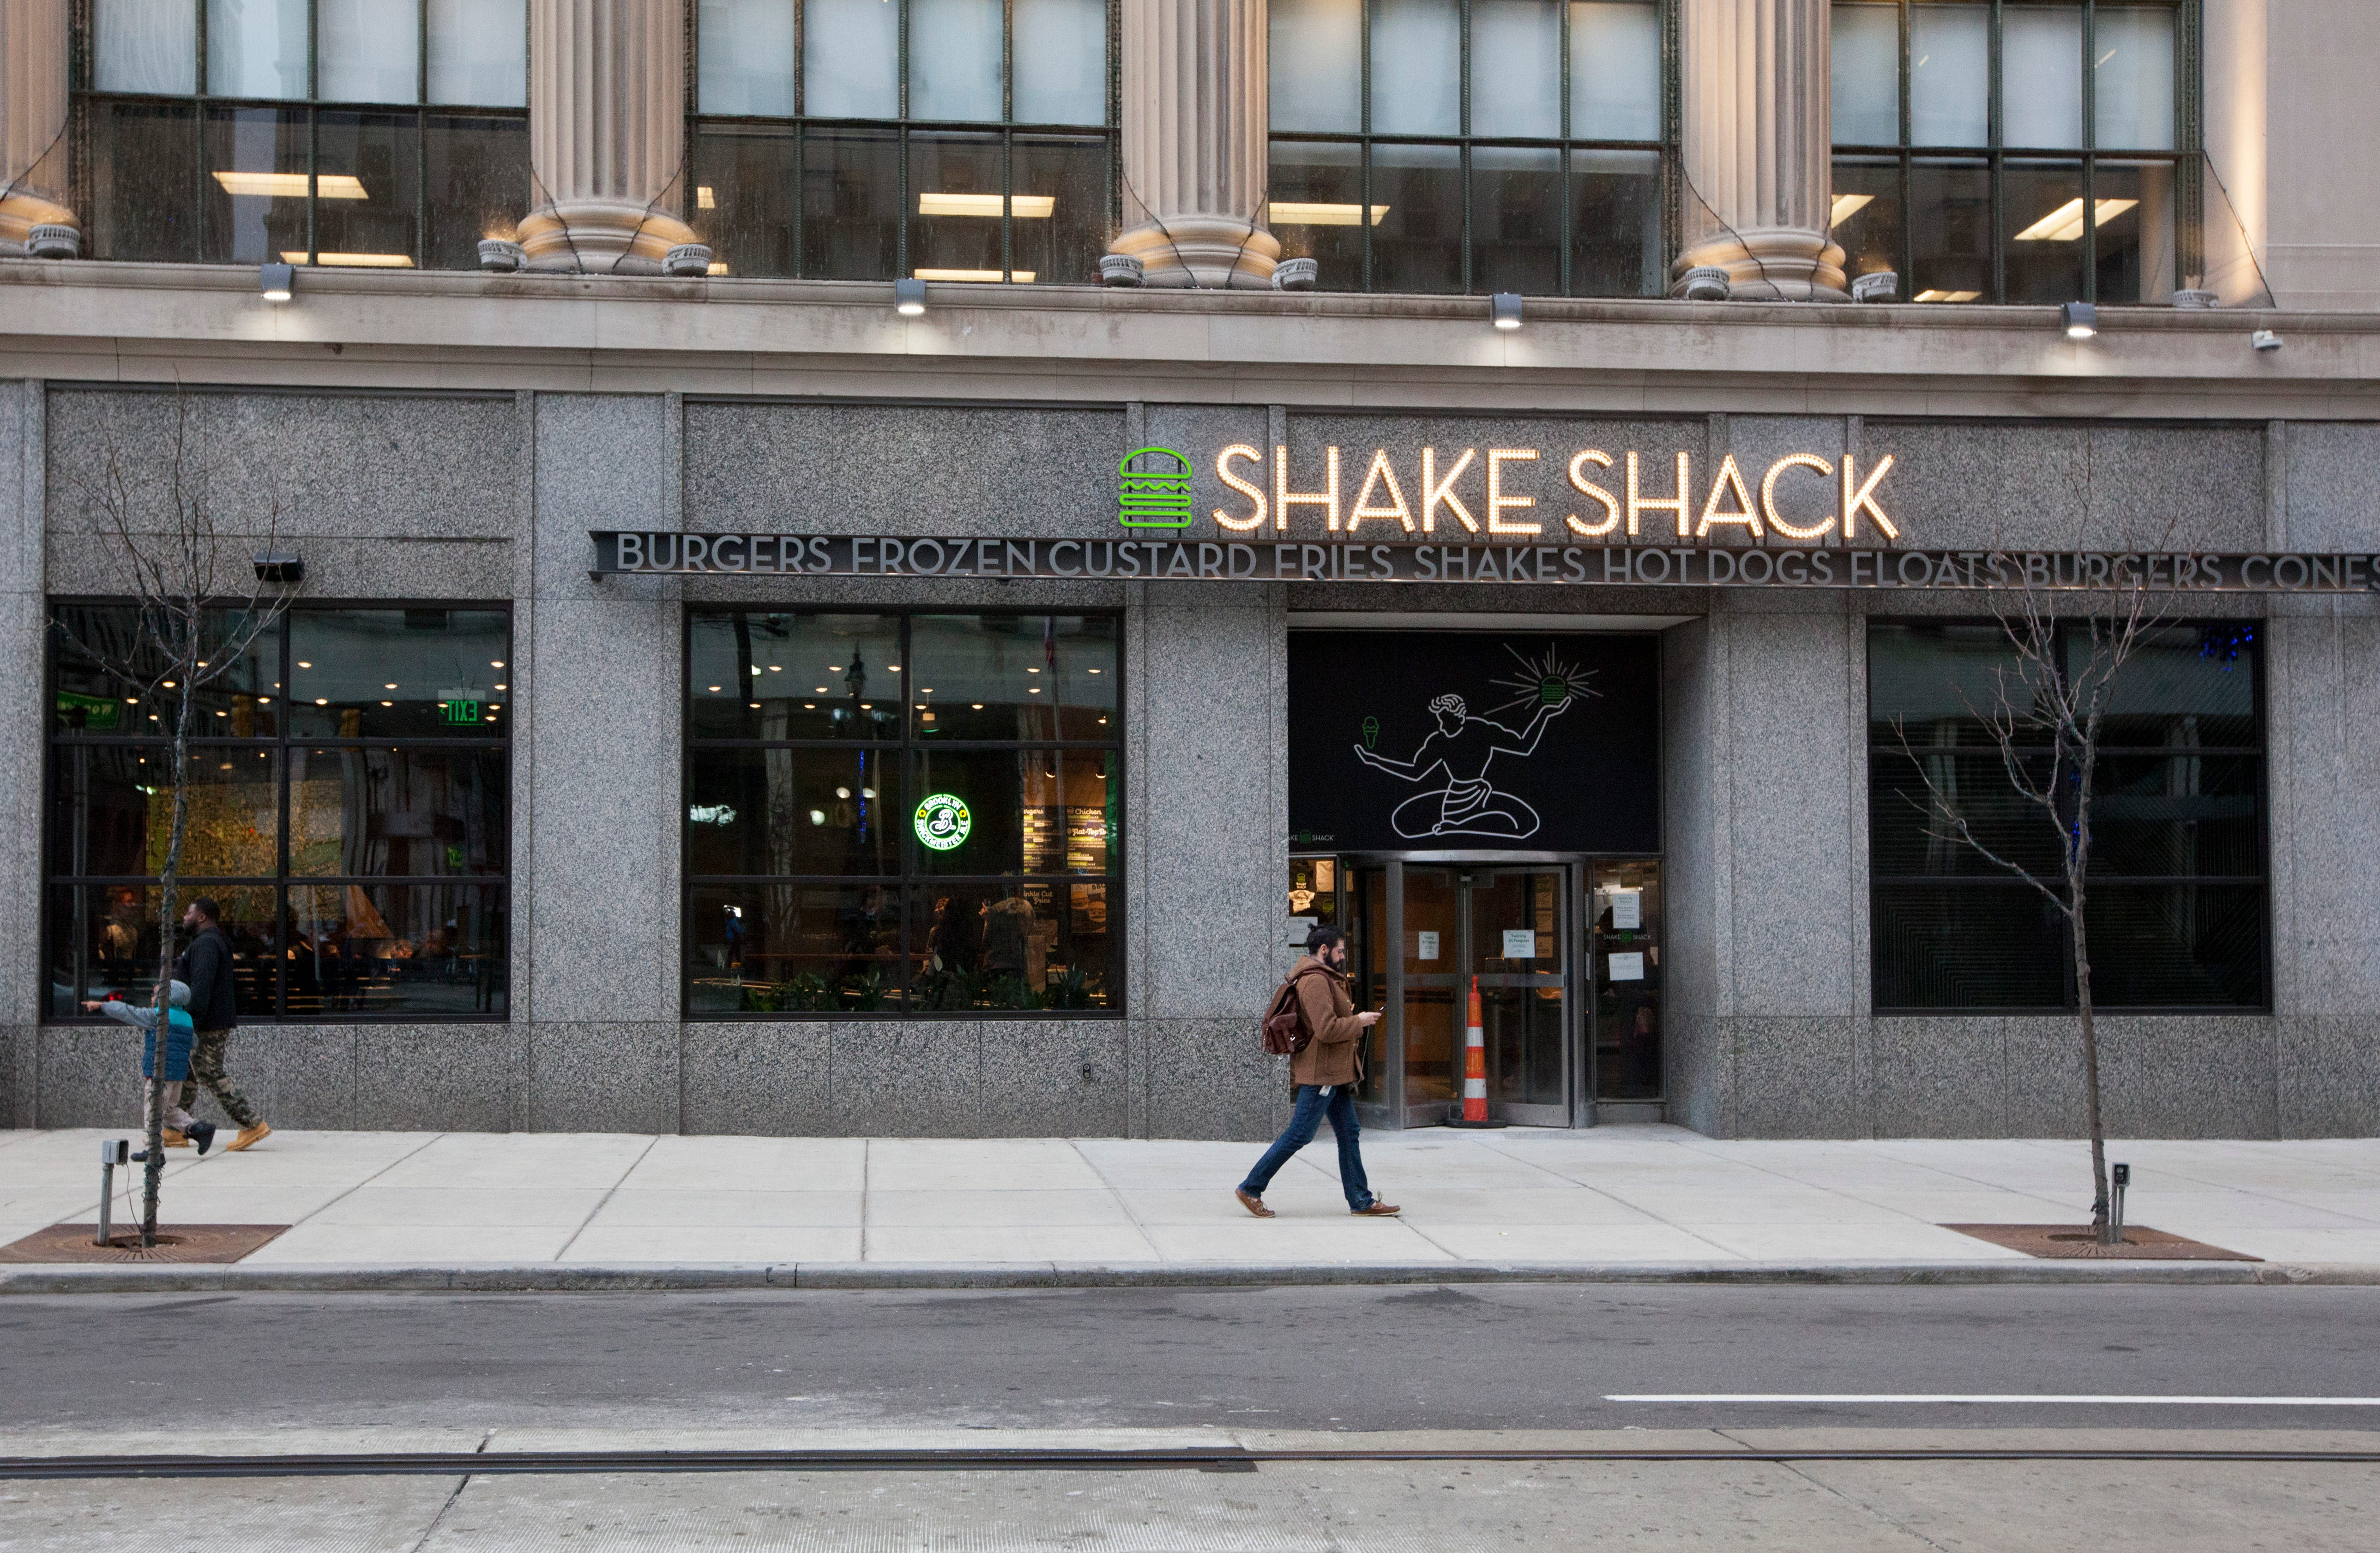 photo relating to Shake Shack Printable Coupons named Shake shack specials / Taking pictures plans